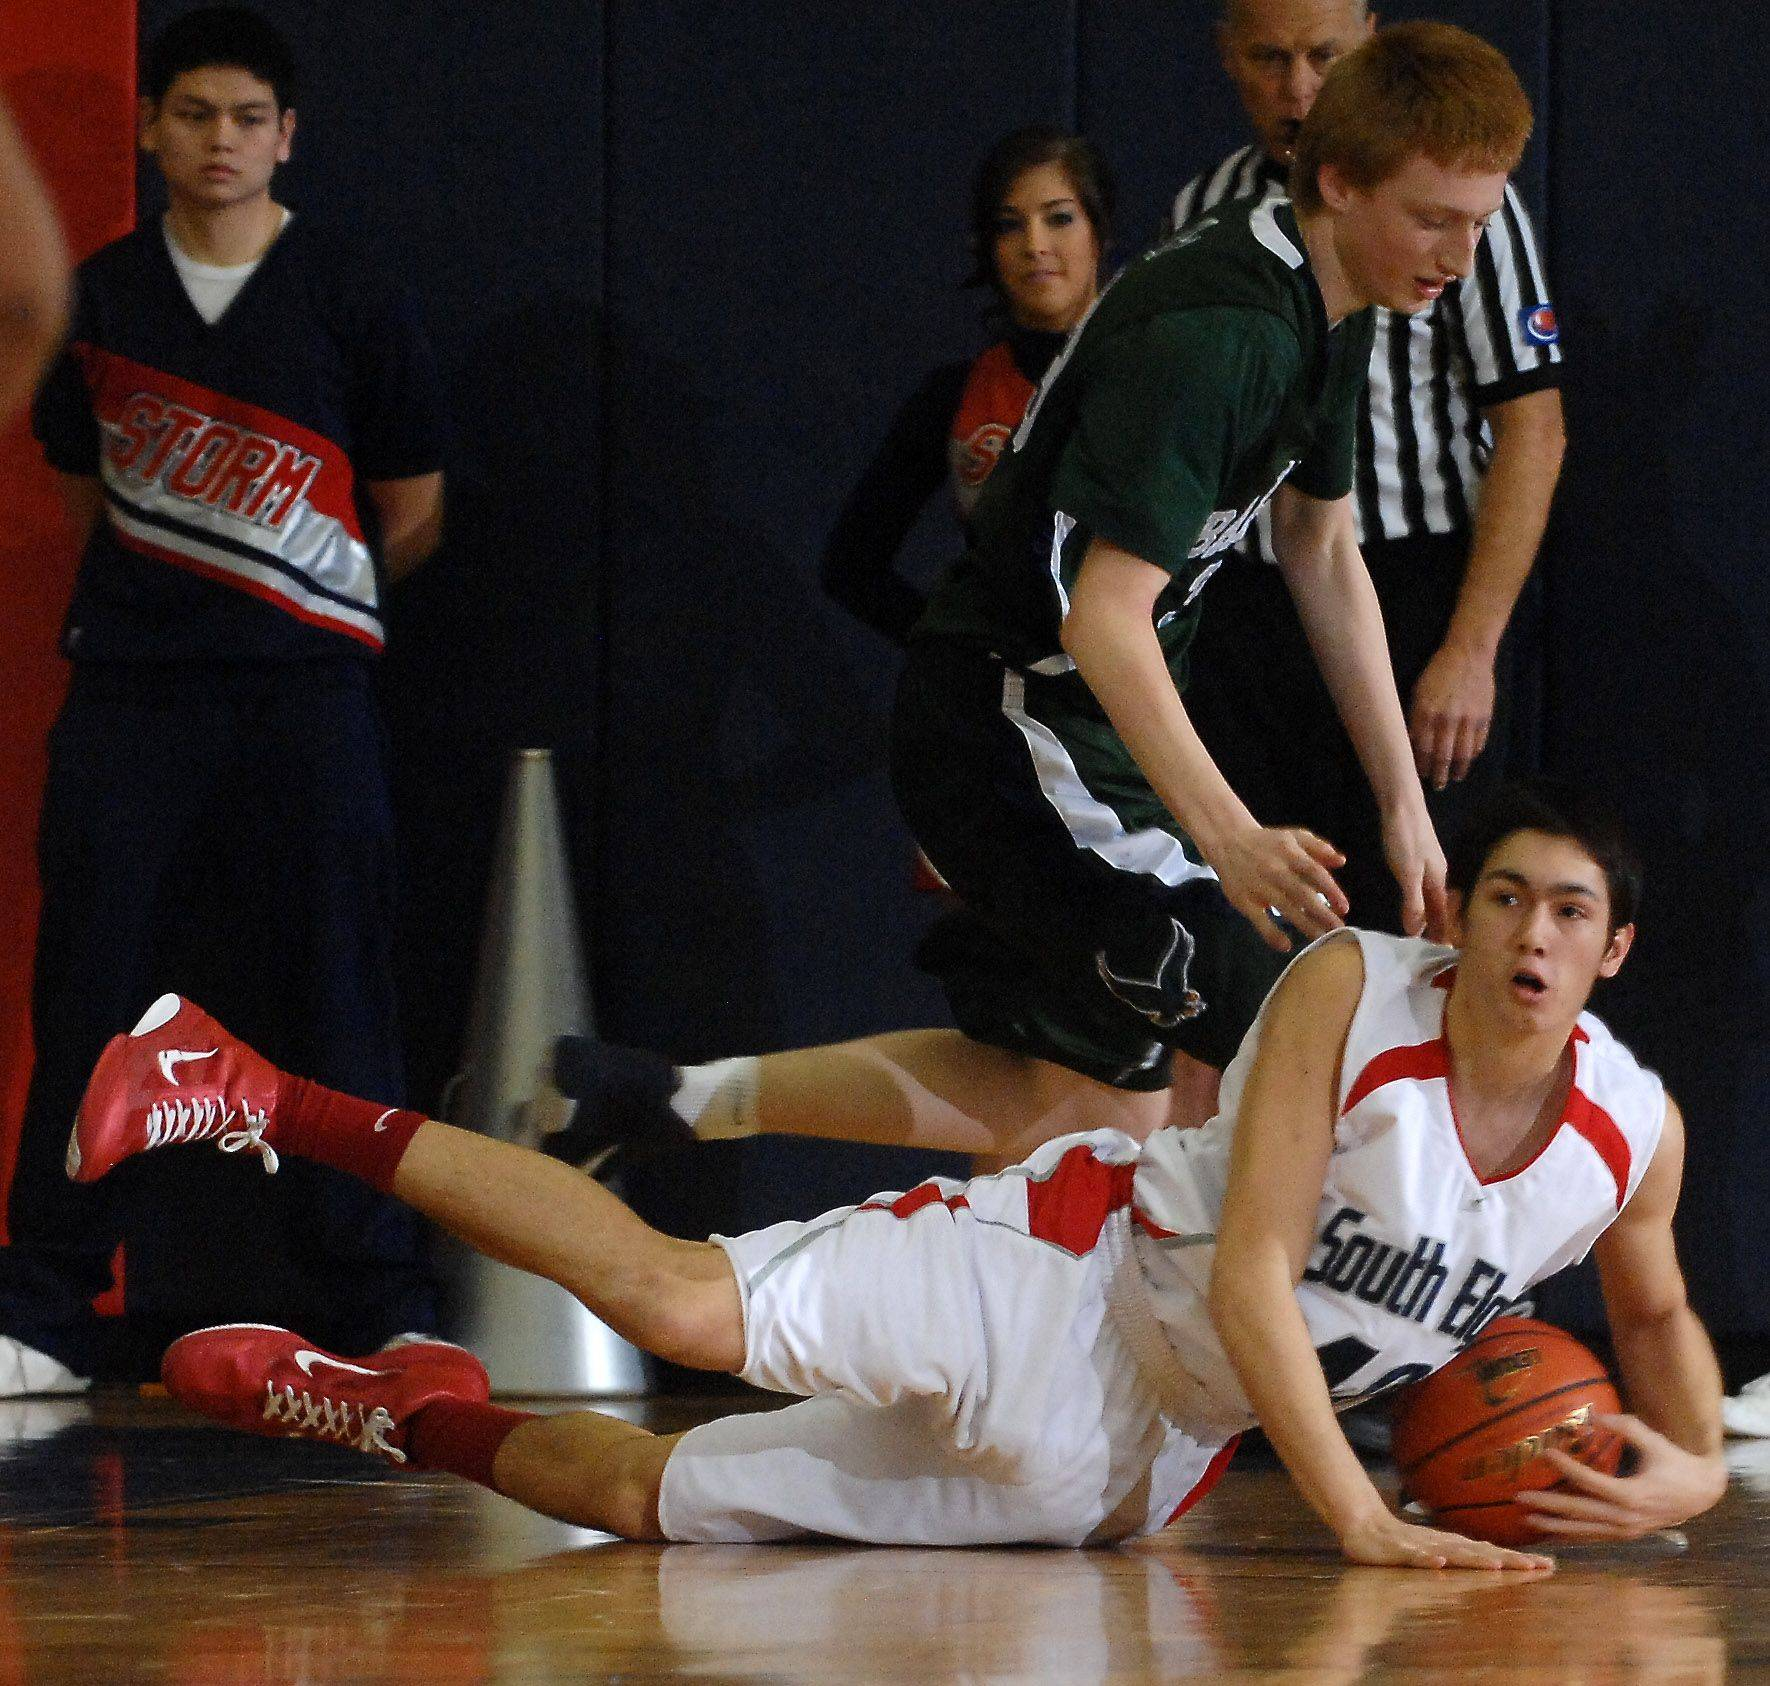 Images from the Bartlett vs. South Elgin boys basketball game Friday, January 7, 2011.